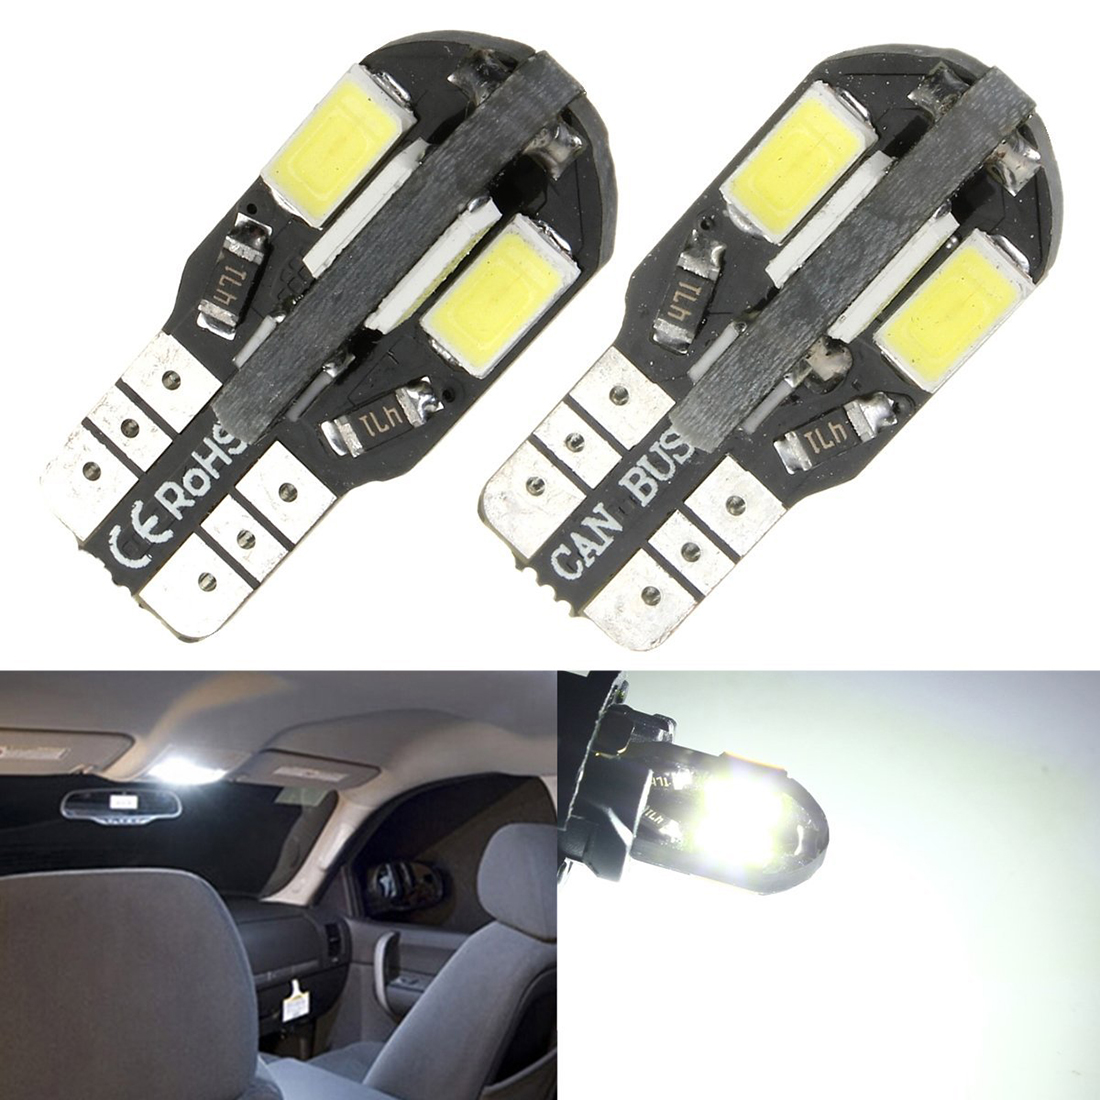 2 pcs T10 194 168 W5W 5730 8 SMD 12V Side for car crib Parkinglight license plate for car White